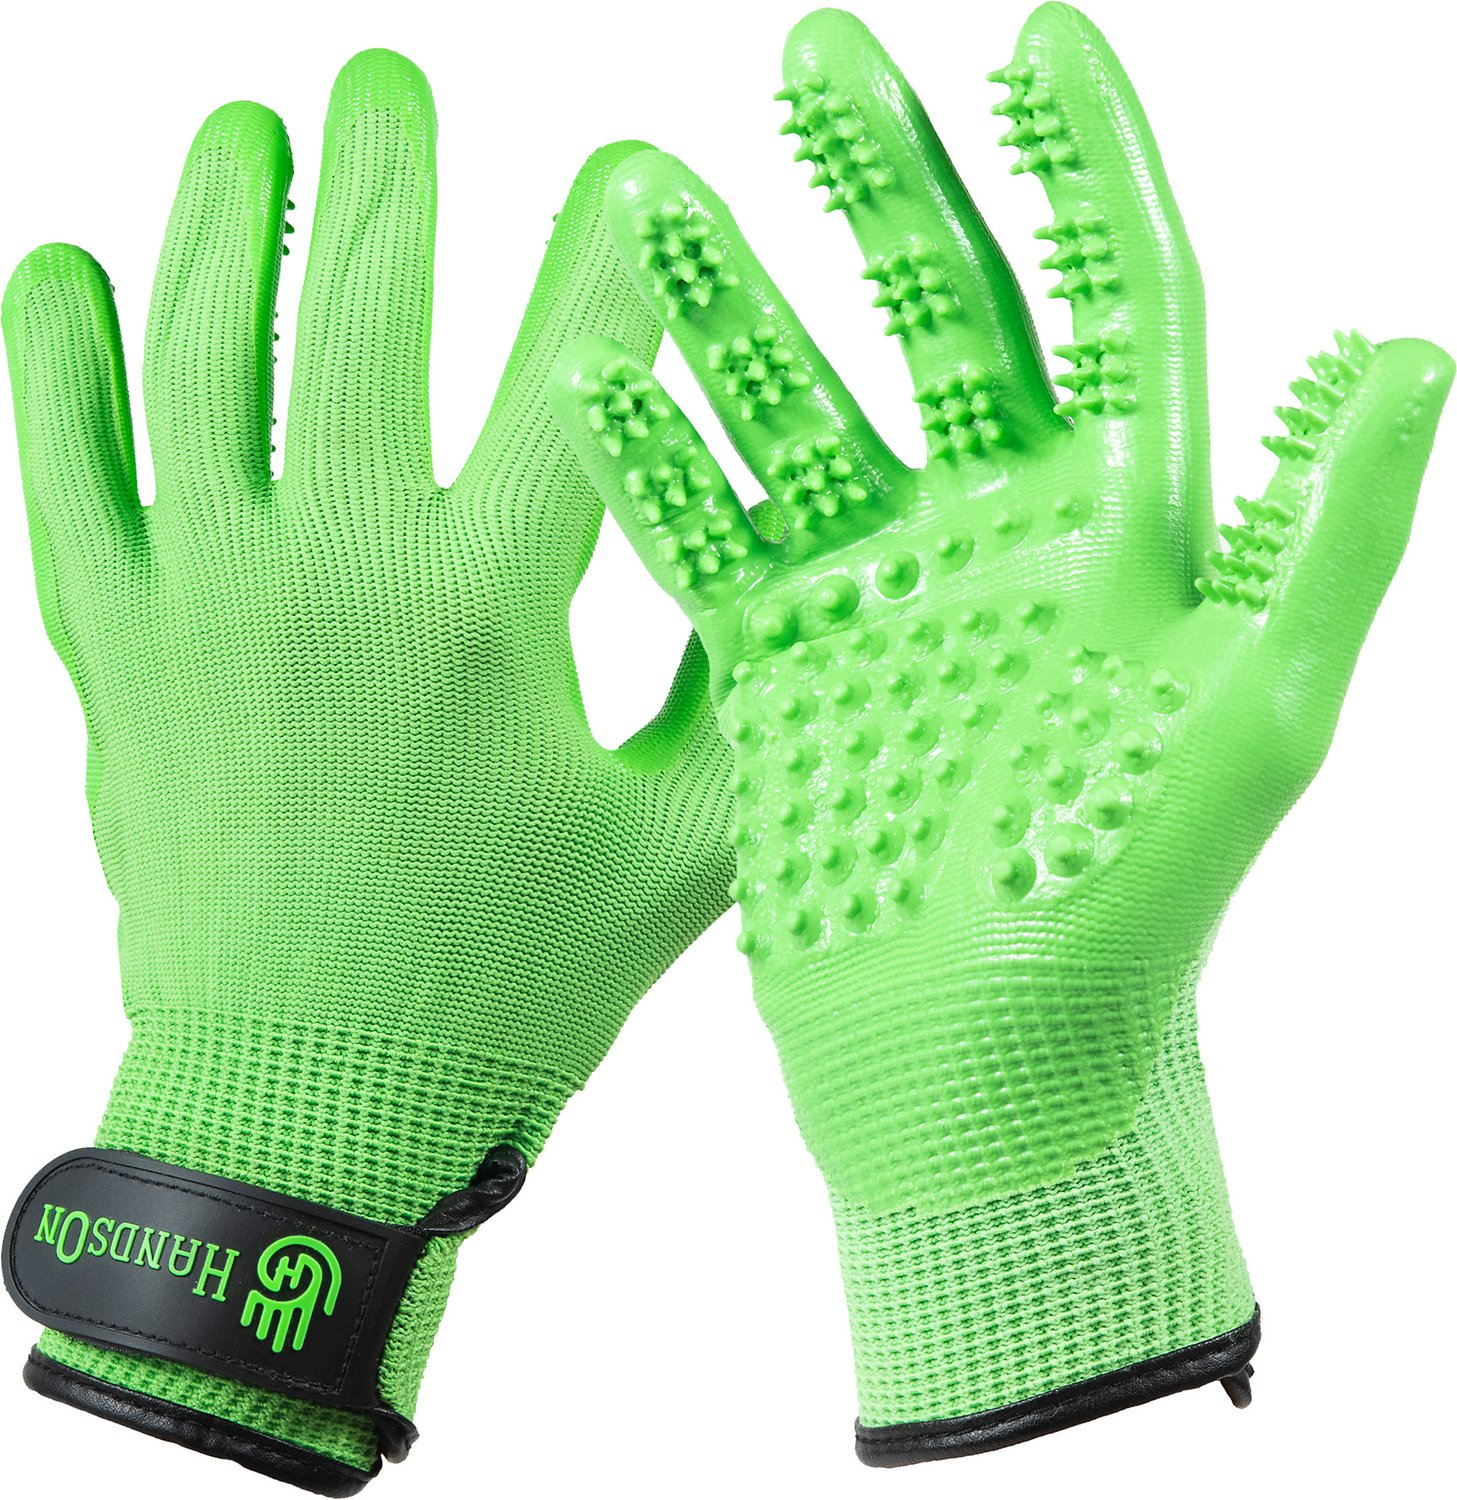 HandsOn Revolutionary Grooming//Bathing Gloves for Pets Green Size Extra Large